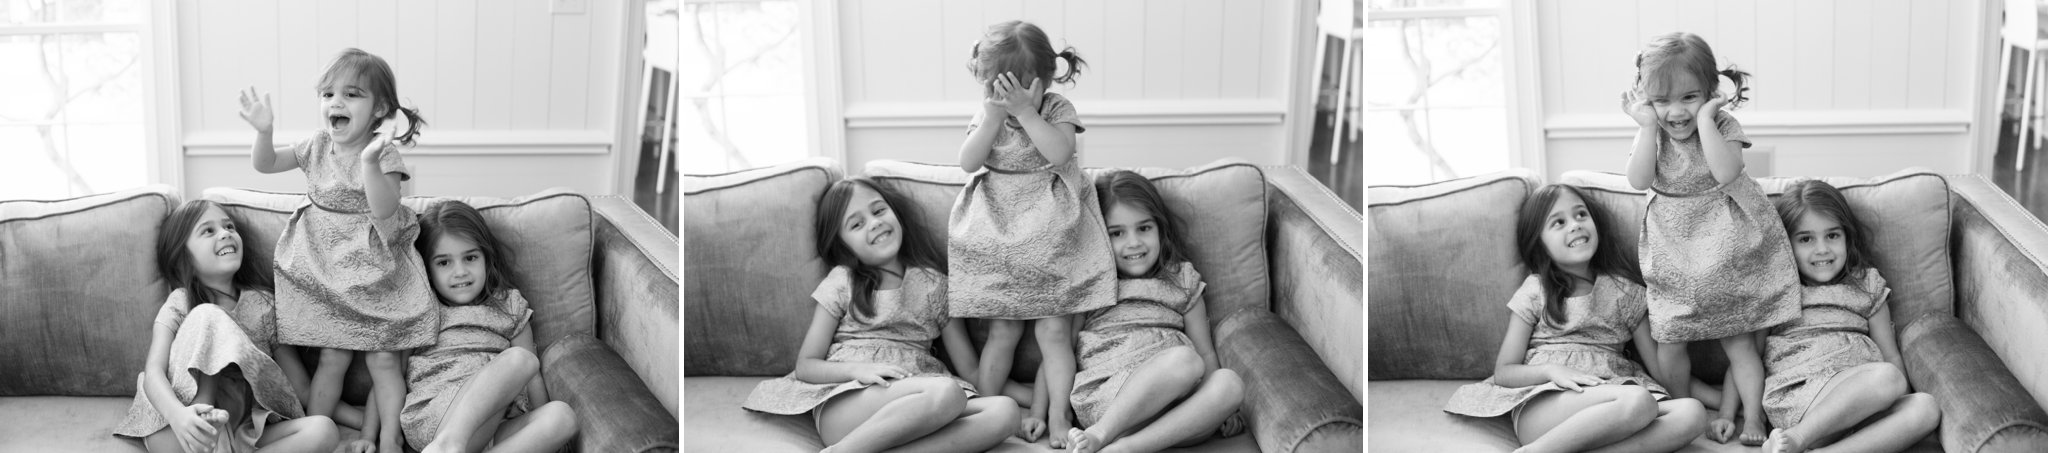 tallahassee family photographer shannon griffin photography_0003.jpg